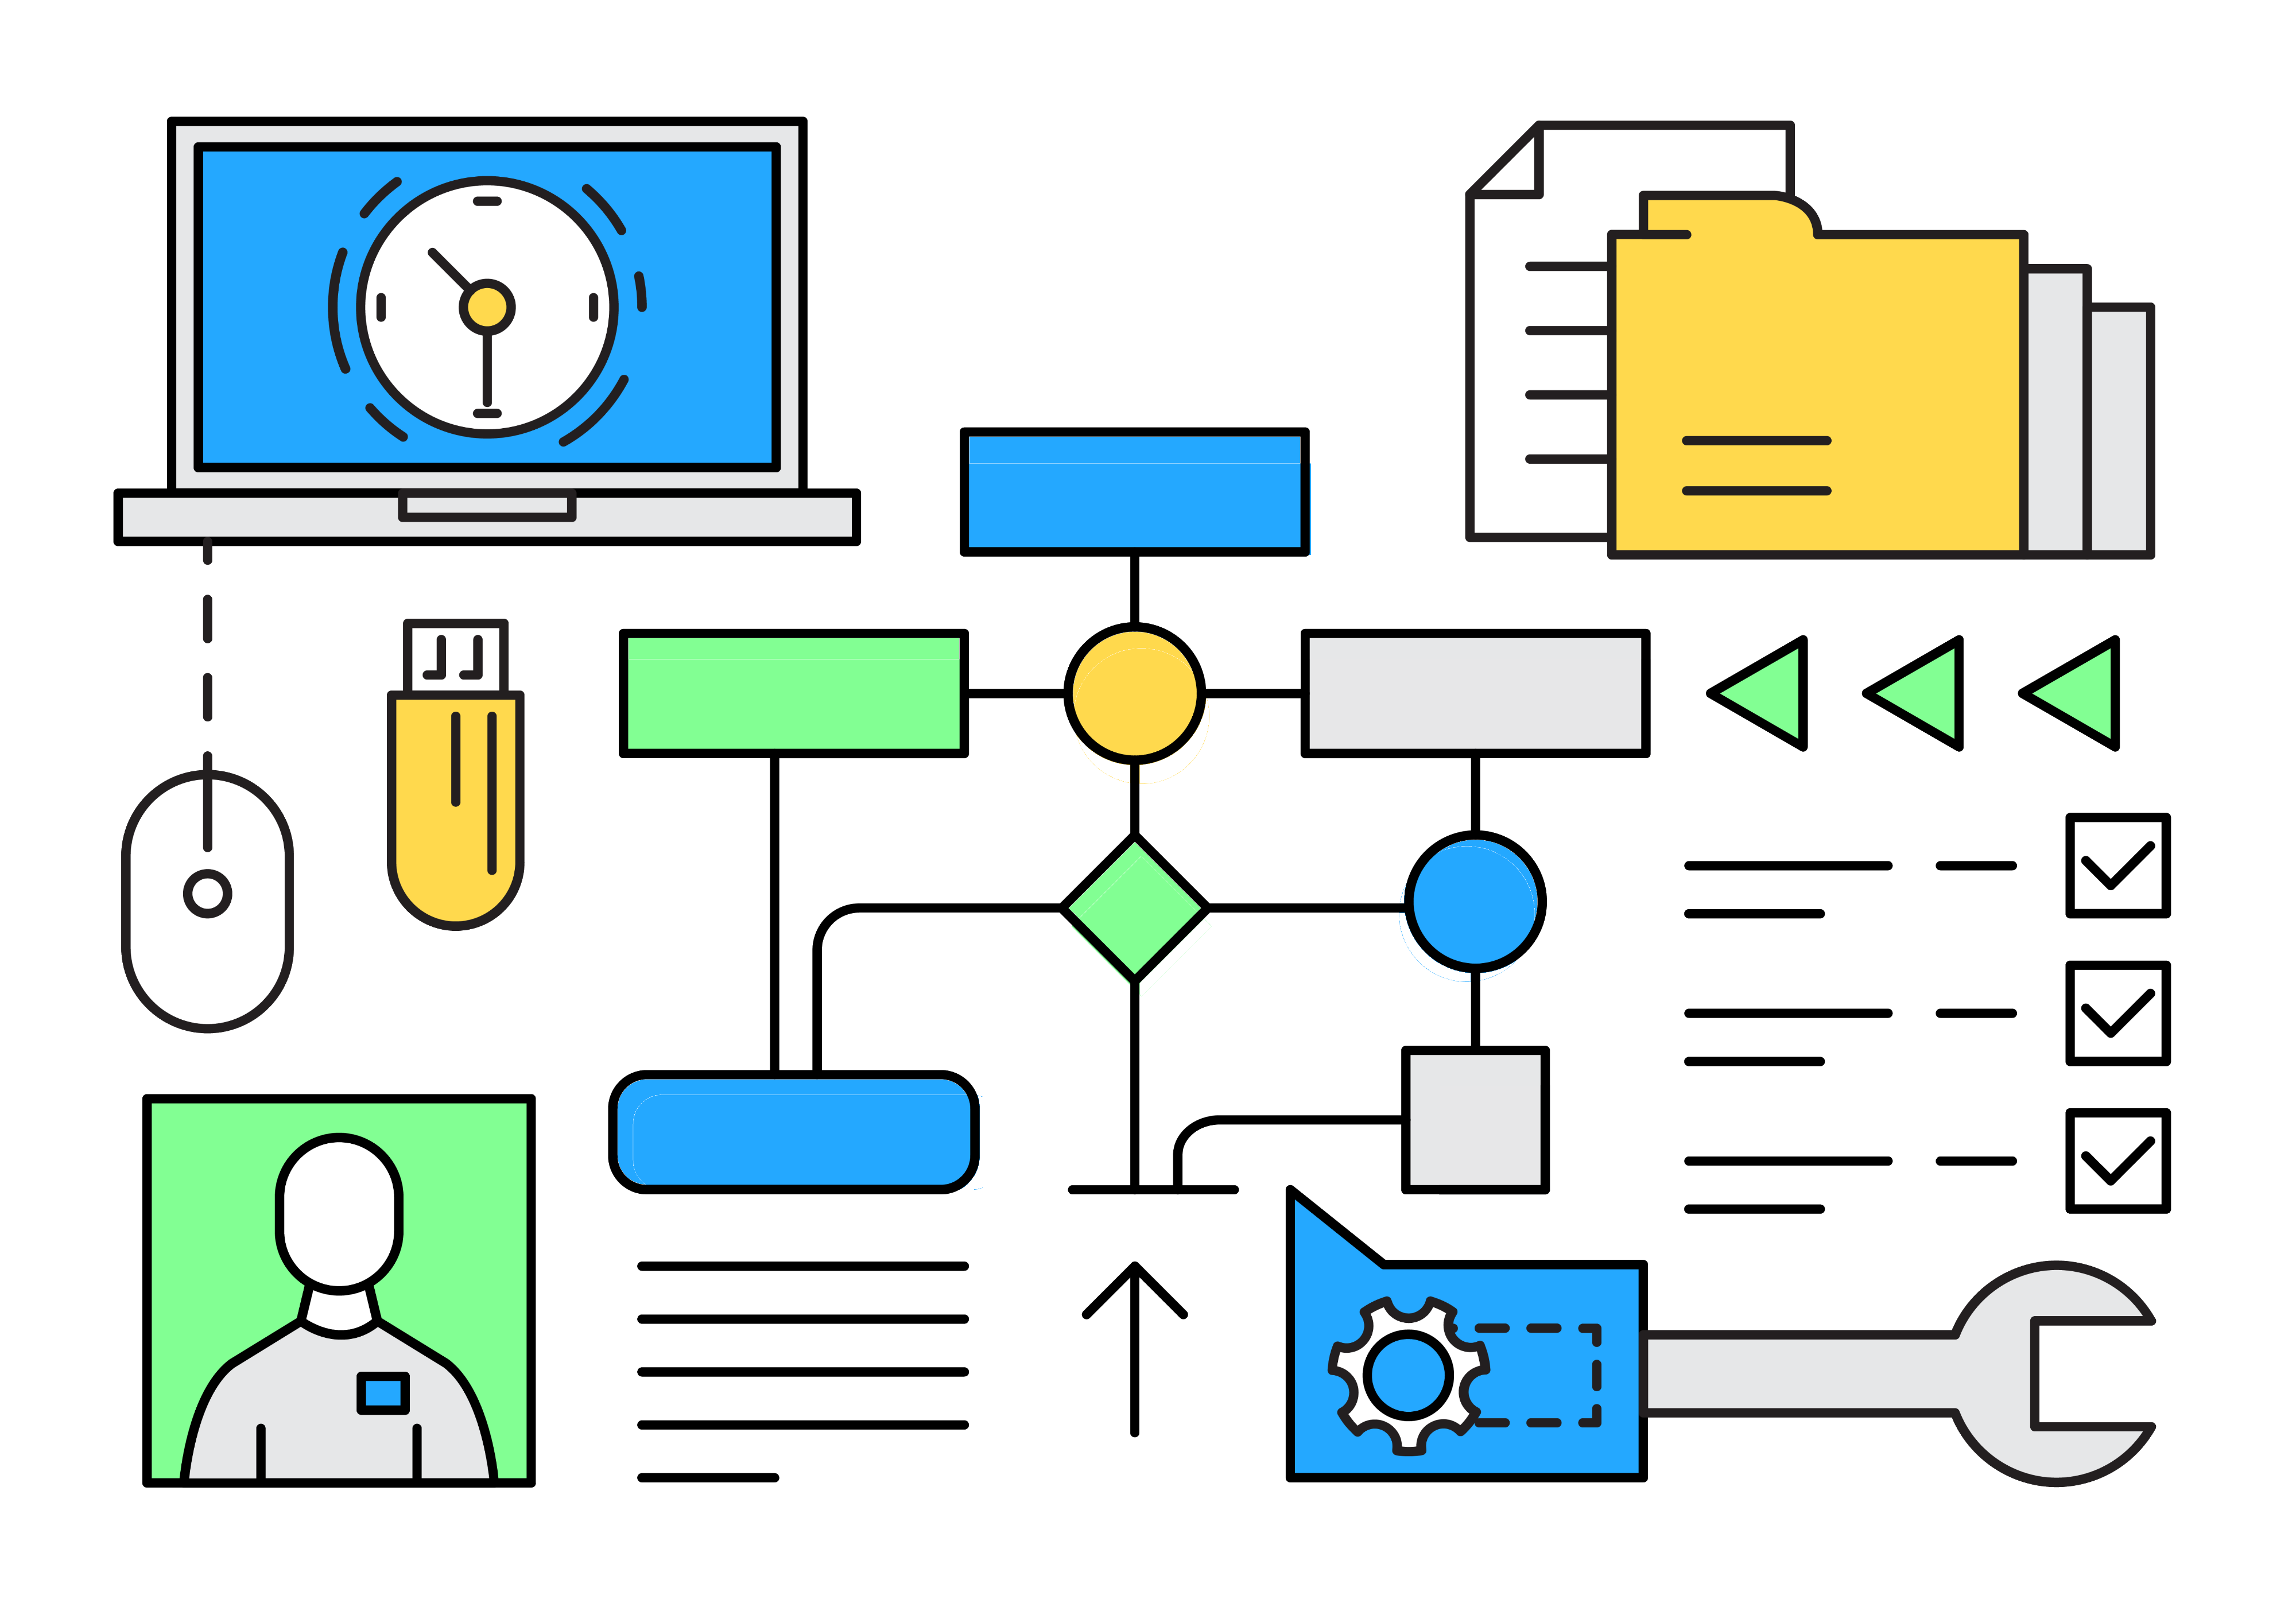 A pictorial representation of some of the features of a Business Process Management system